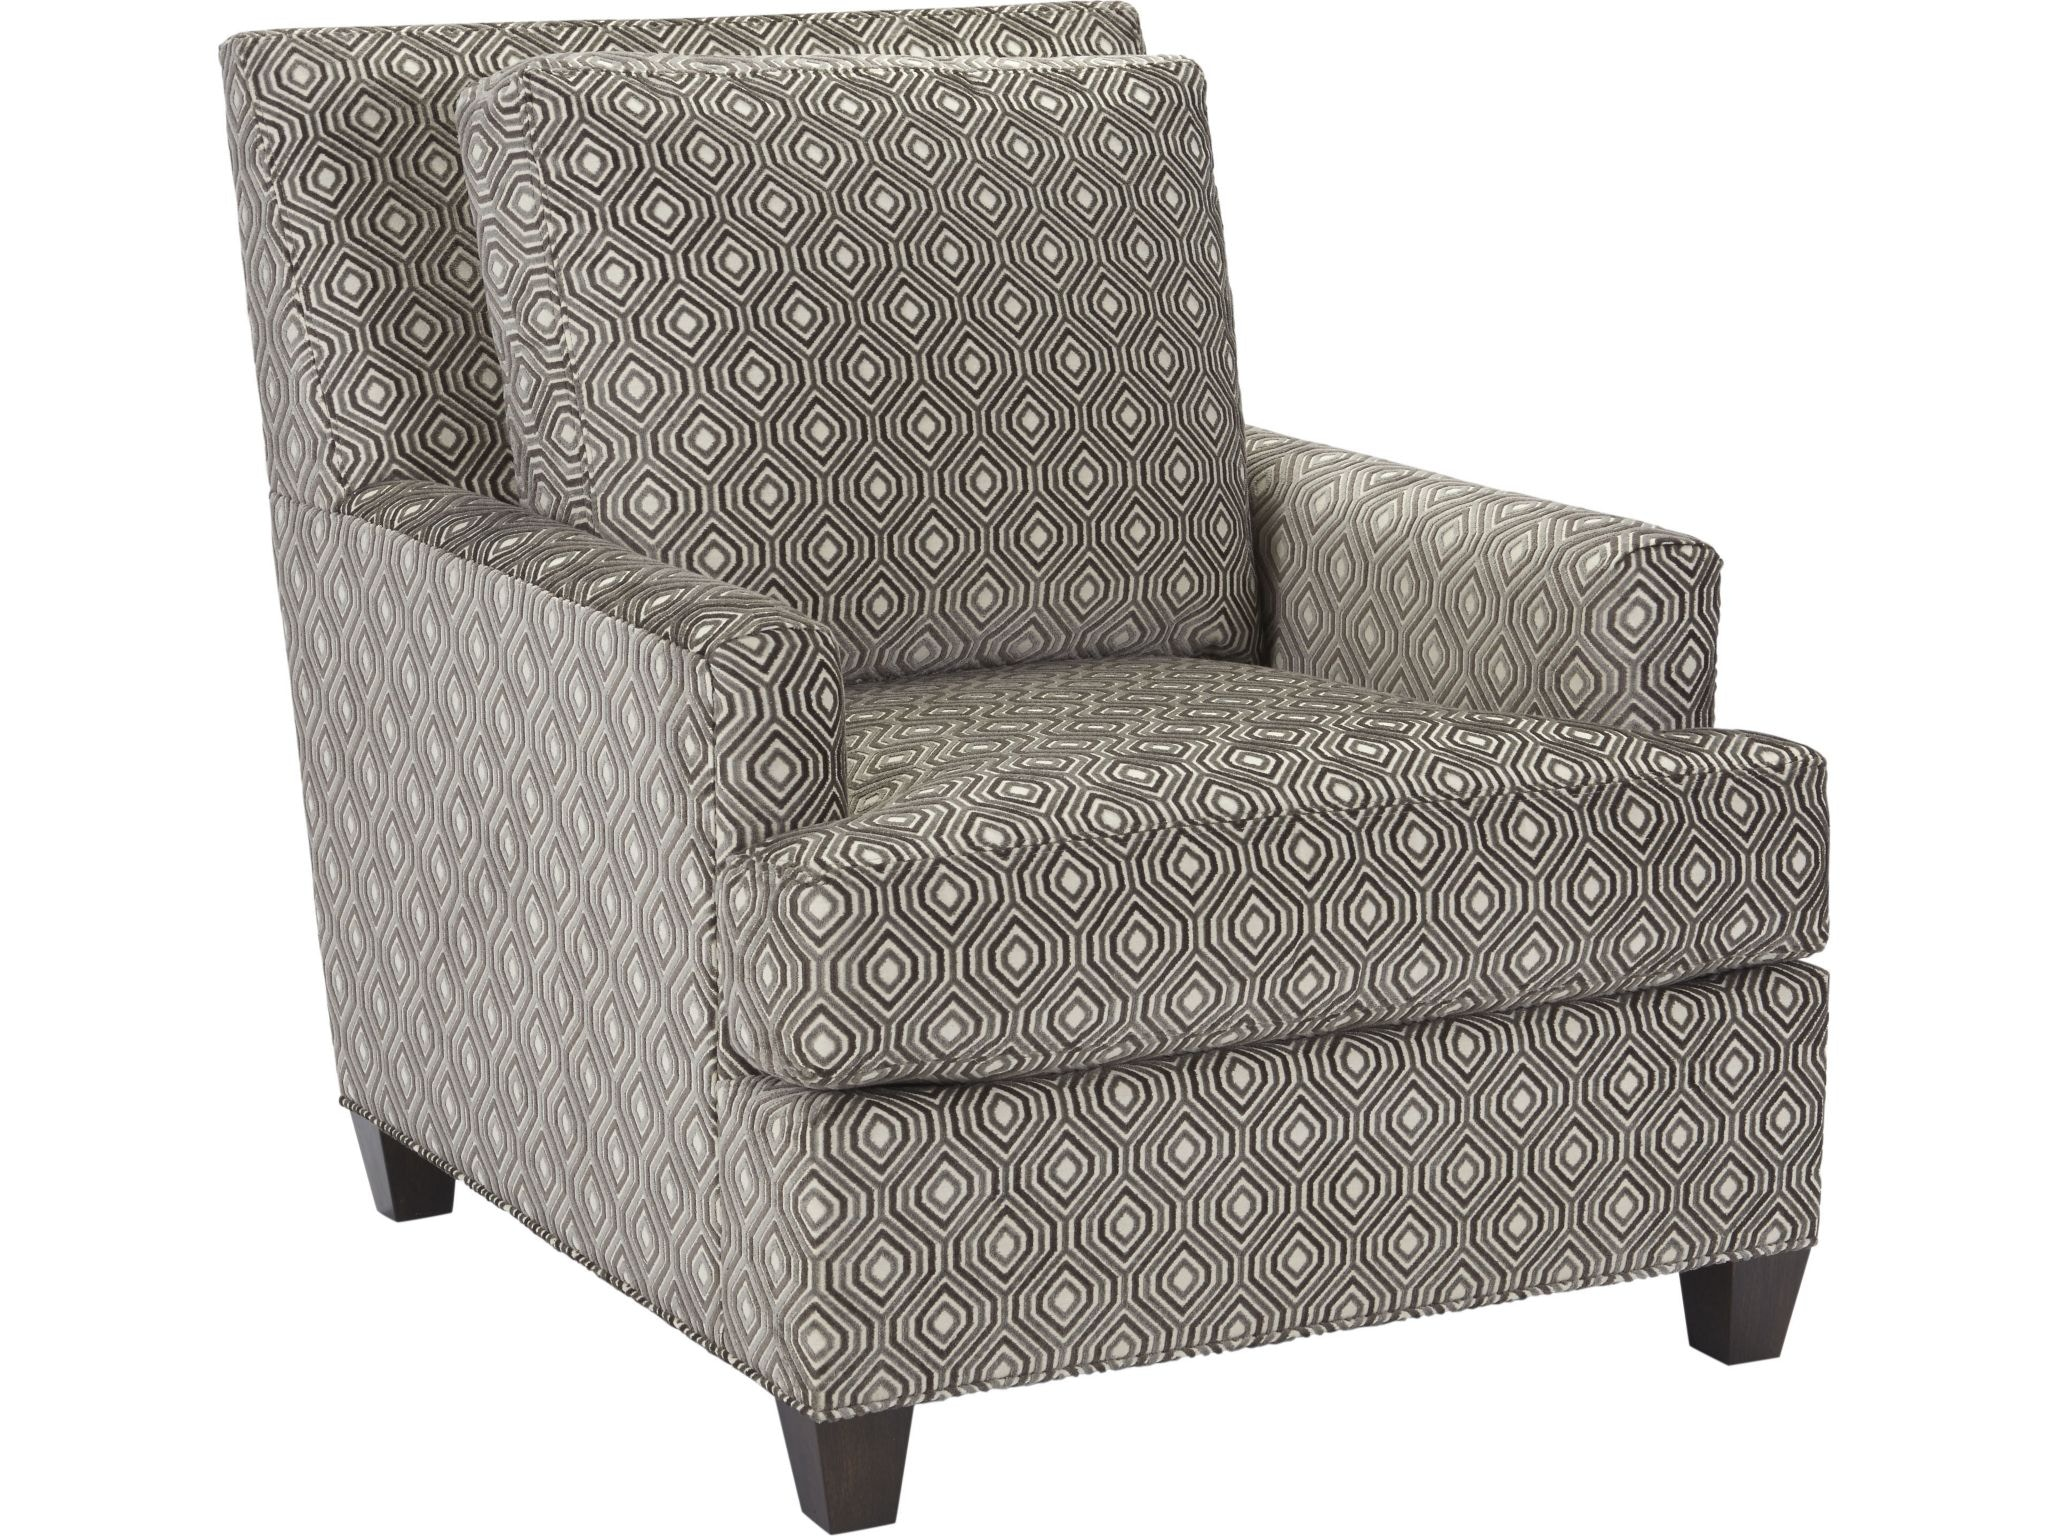 Thomasville Beau Chair 2503 15